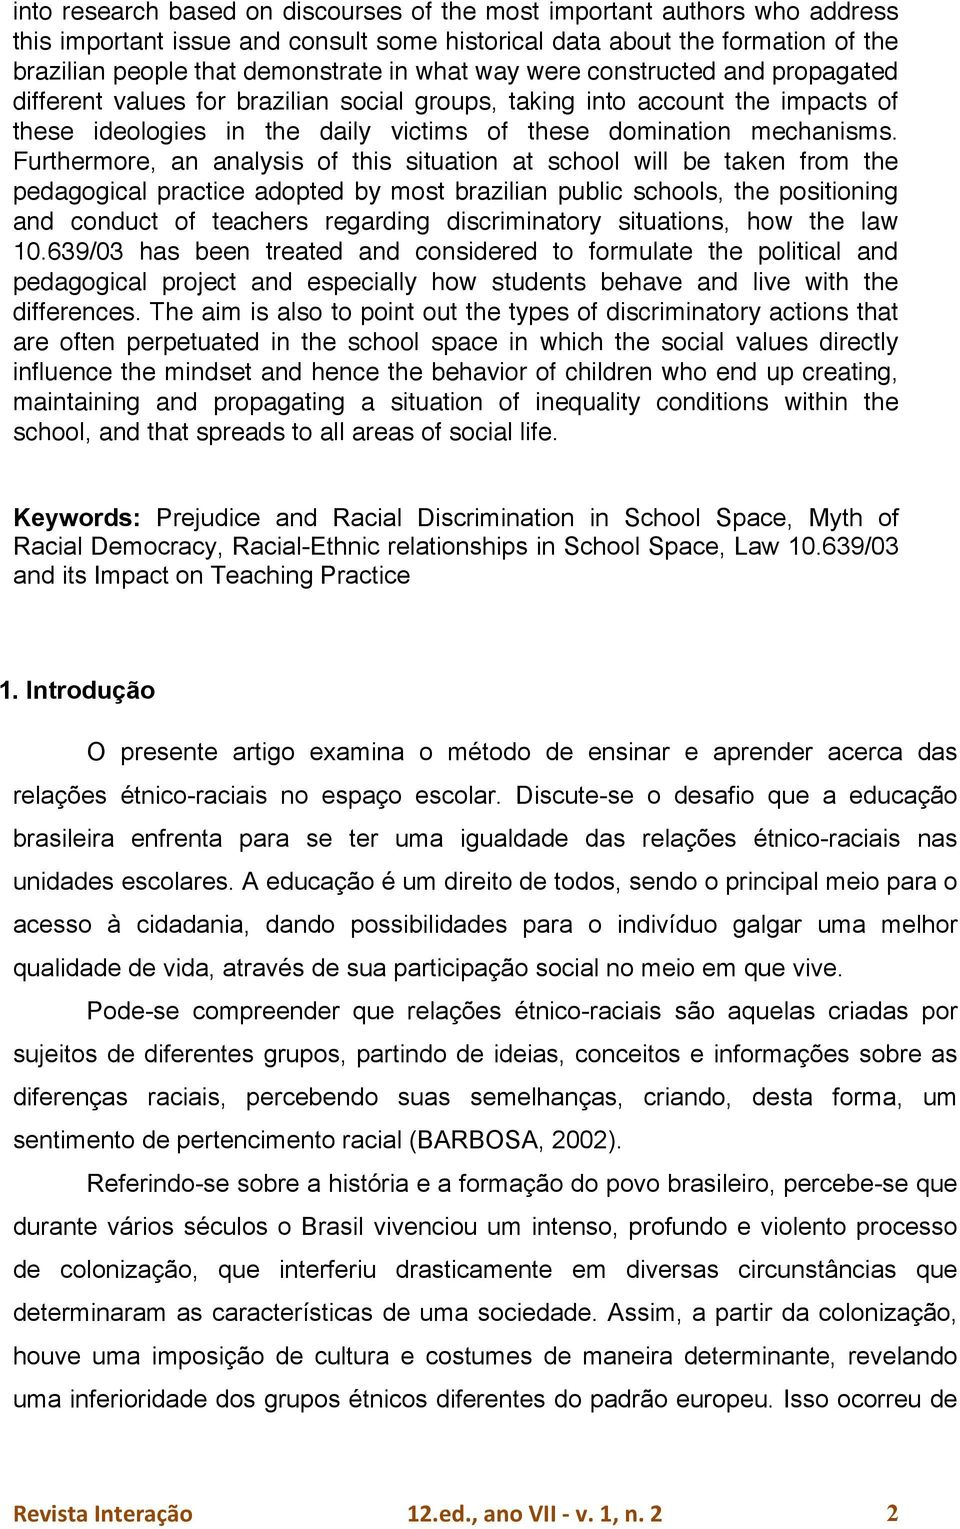 Furthermore, an analysis of this situation at school will be taken from the pedagogical practice adopted by most brazilian public schools, the positioning and conduct of teachers regarding